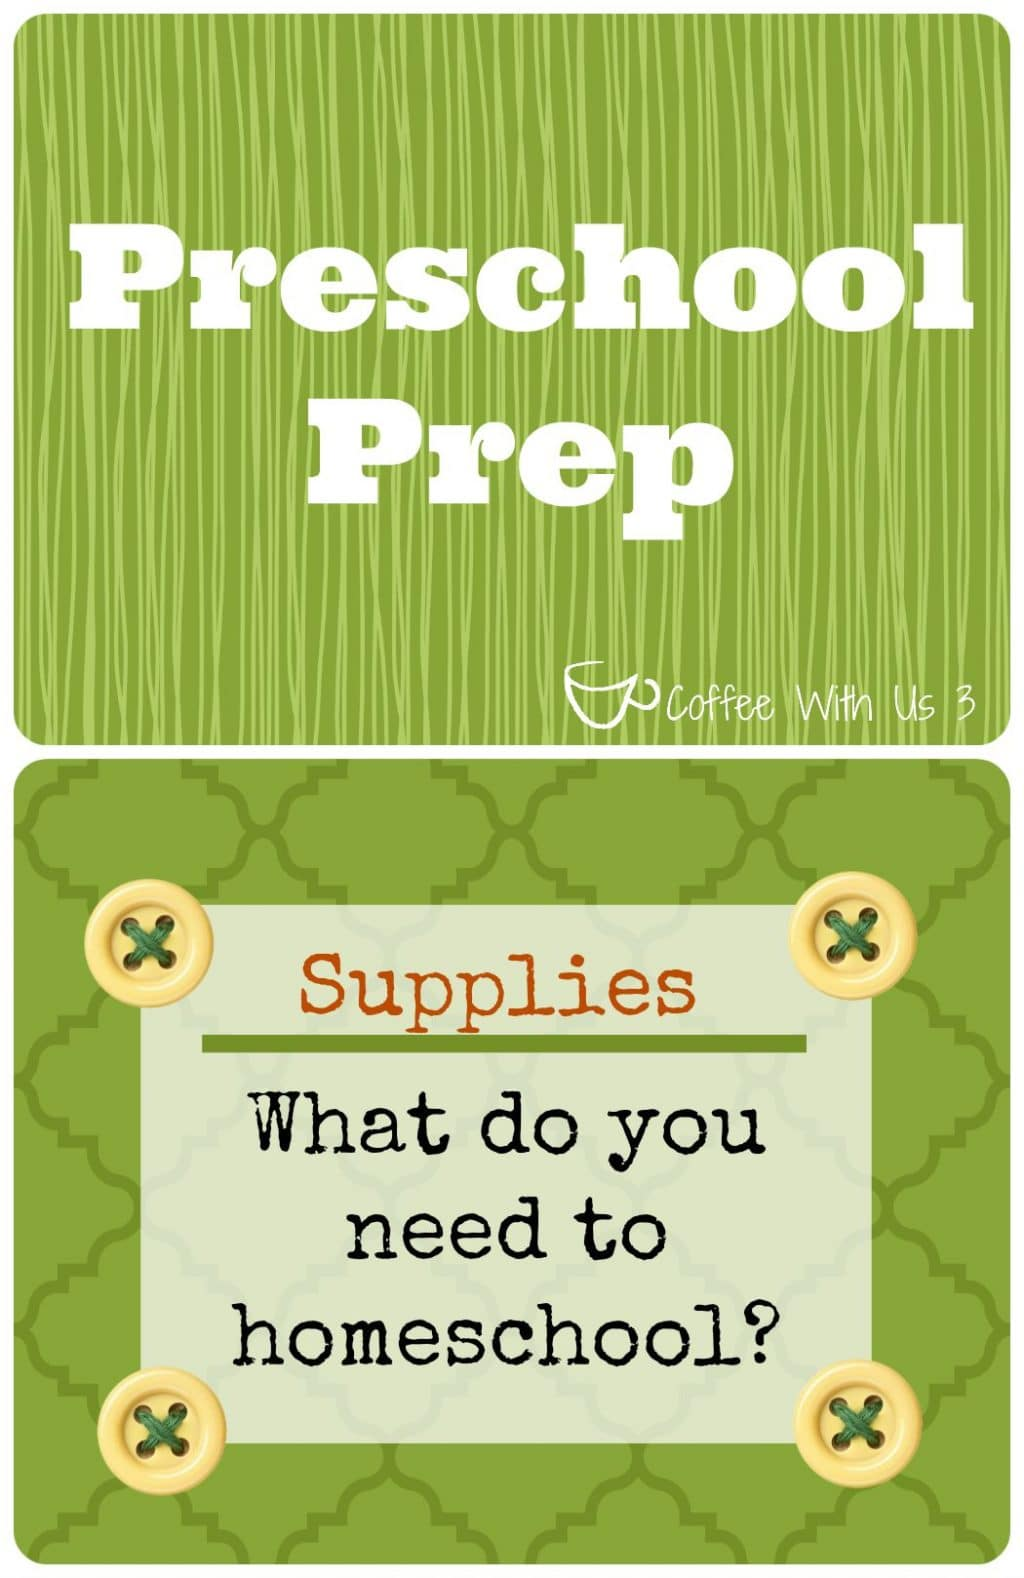 Preschool Prep: Supply List | Coffee With Us 3